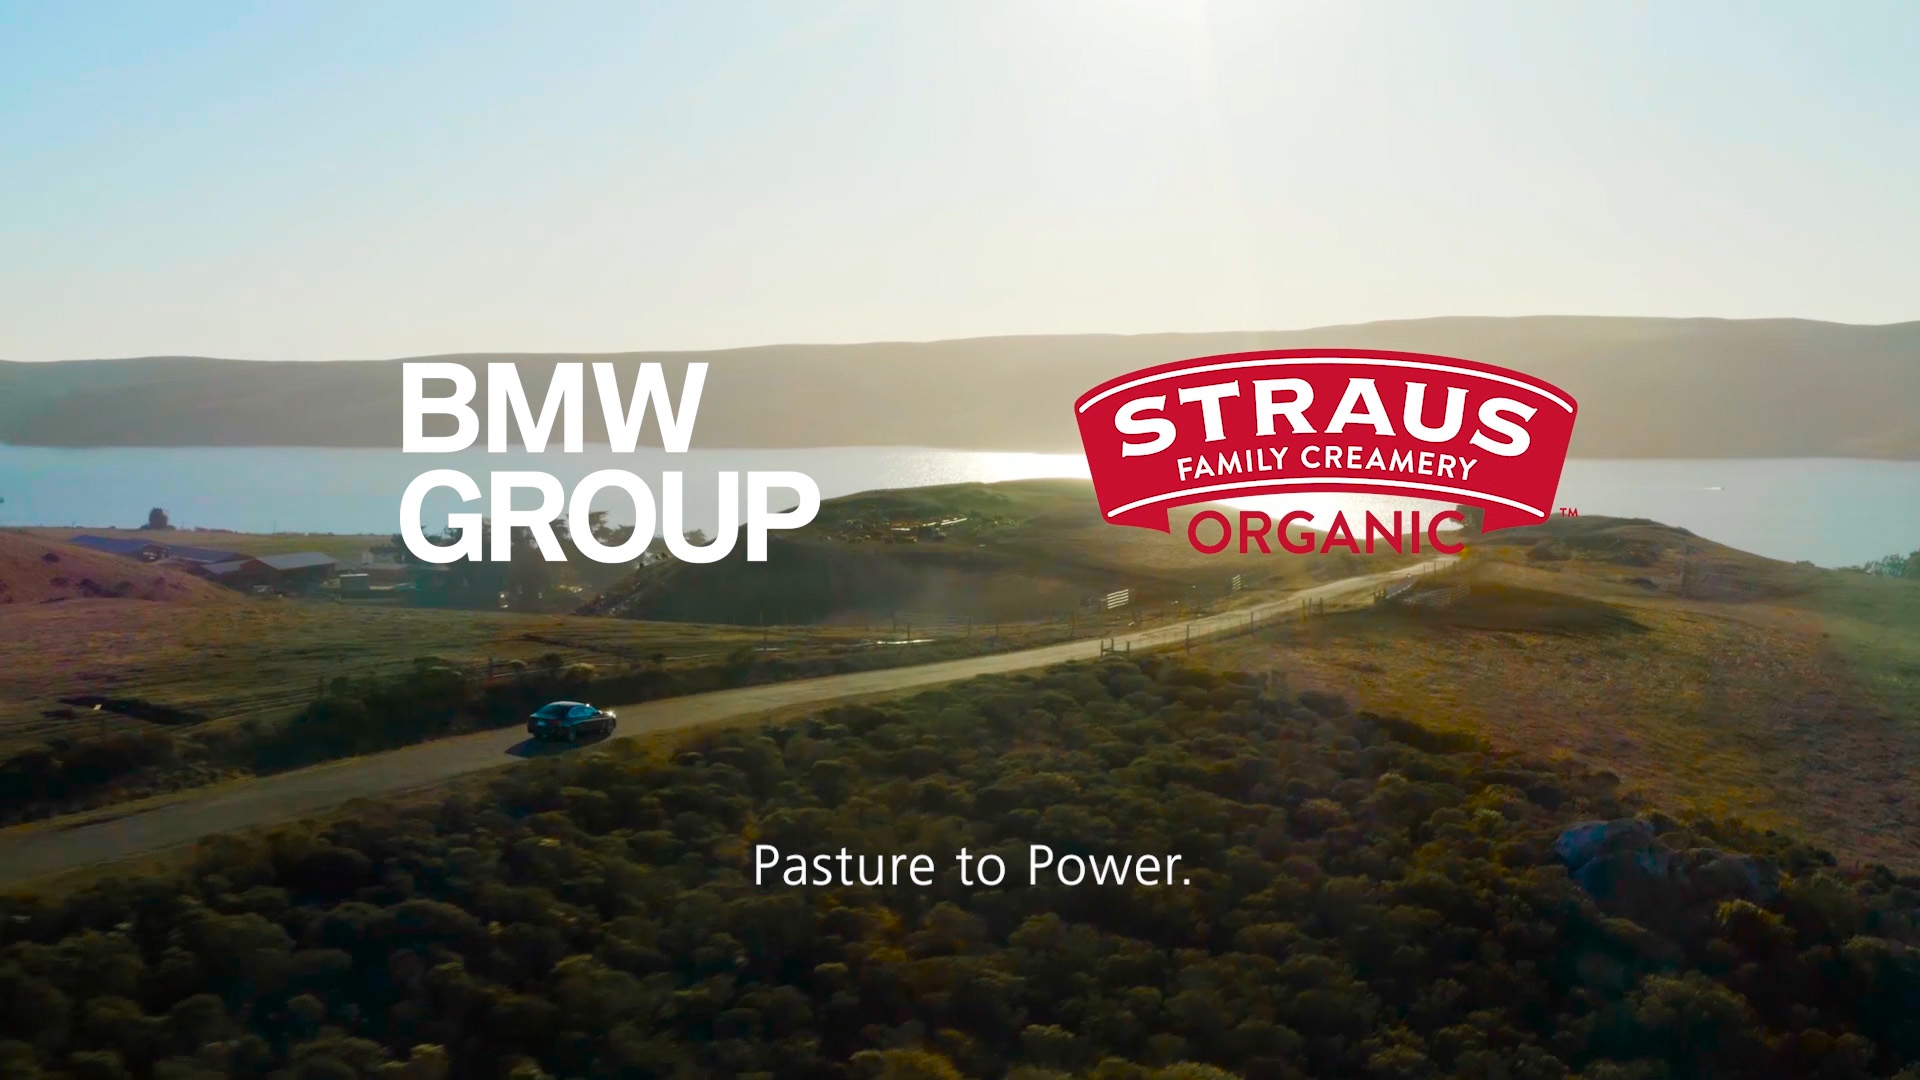 """Watch the video to learn how BMW Group can """"power"""" their customers' electric vehicles with ultra-low carbon intensity electric fuel produced from biodigester technology on the Straus Organic Dairy Farm."""